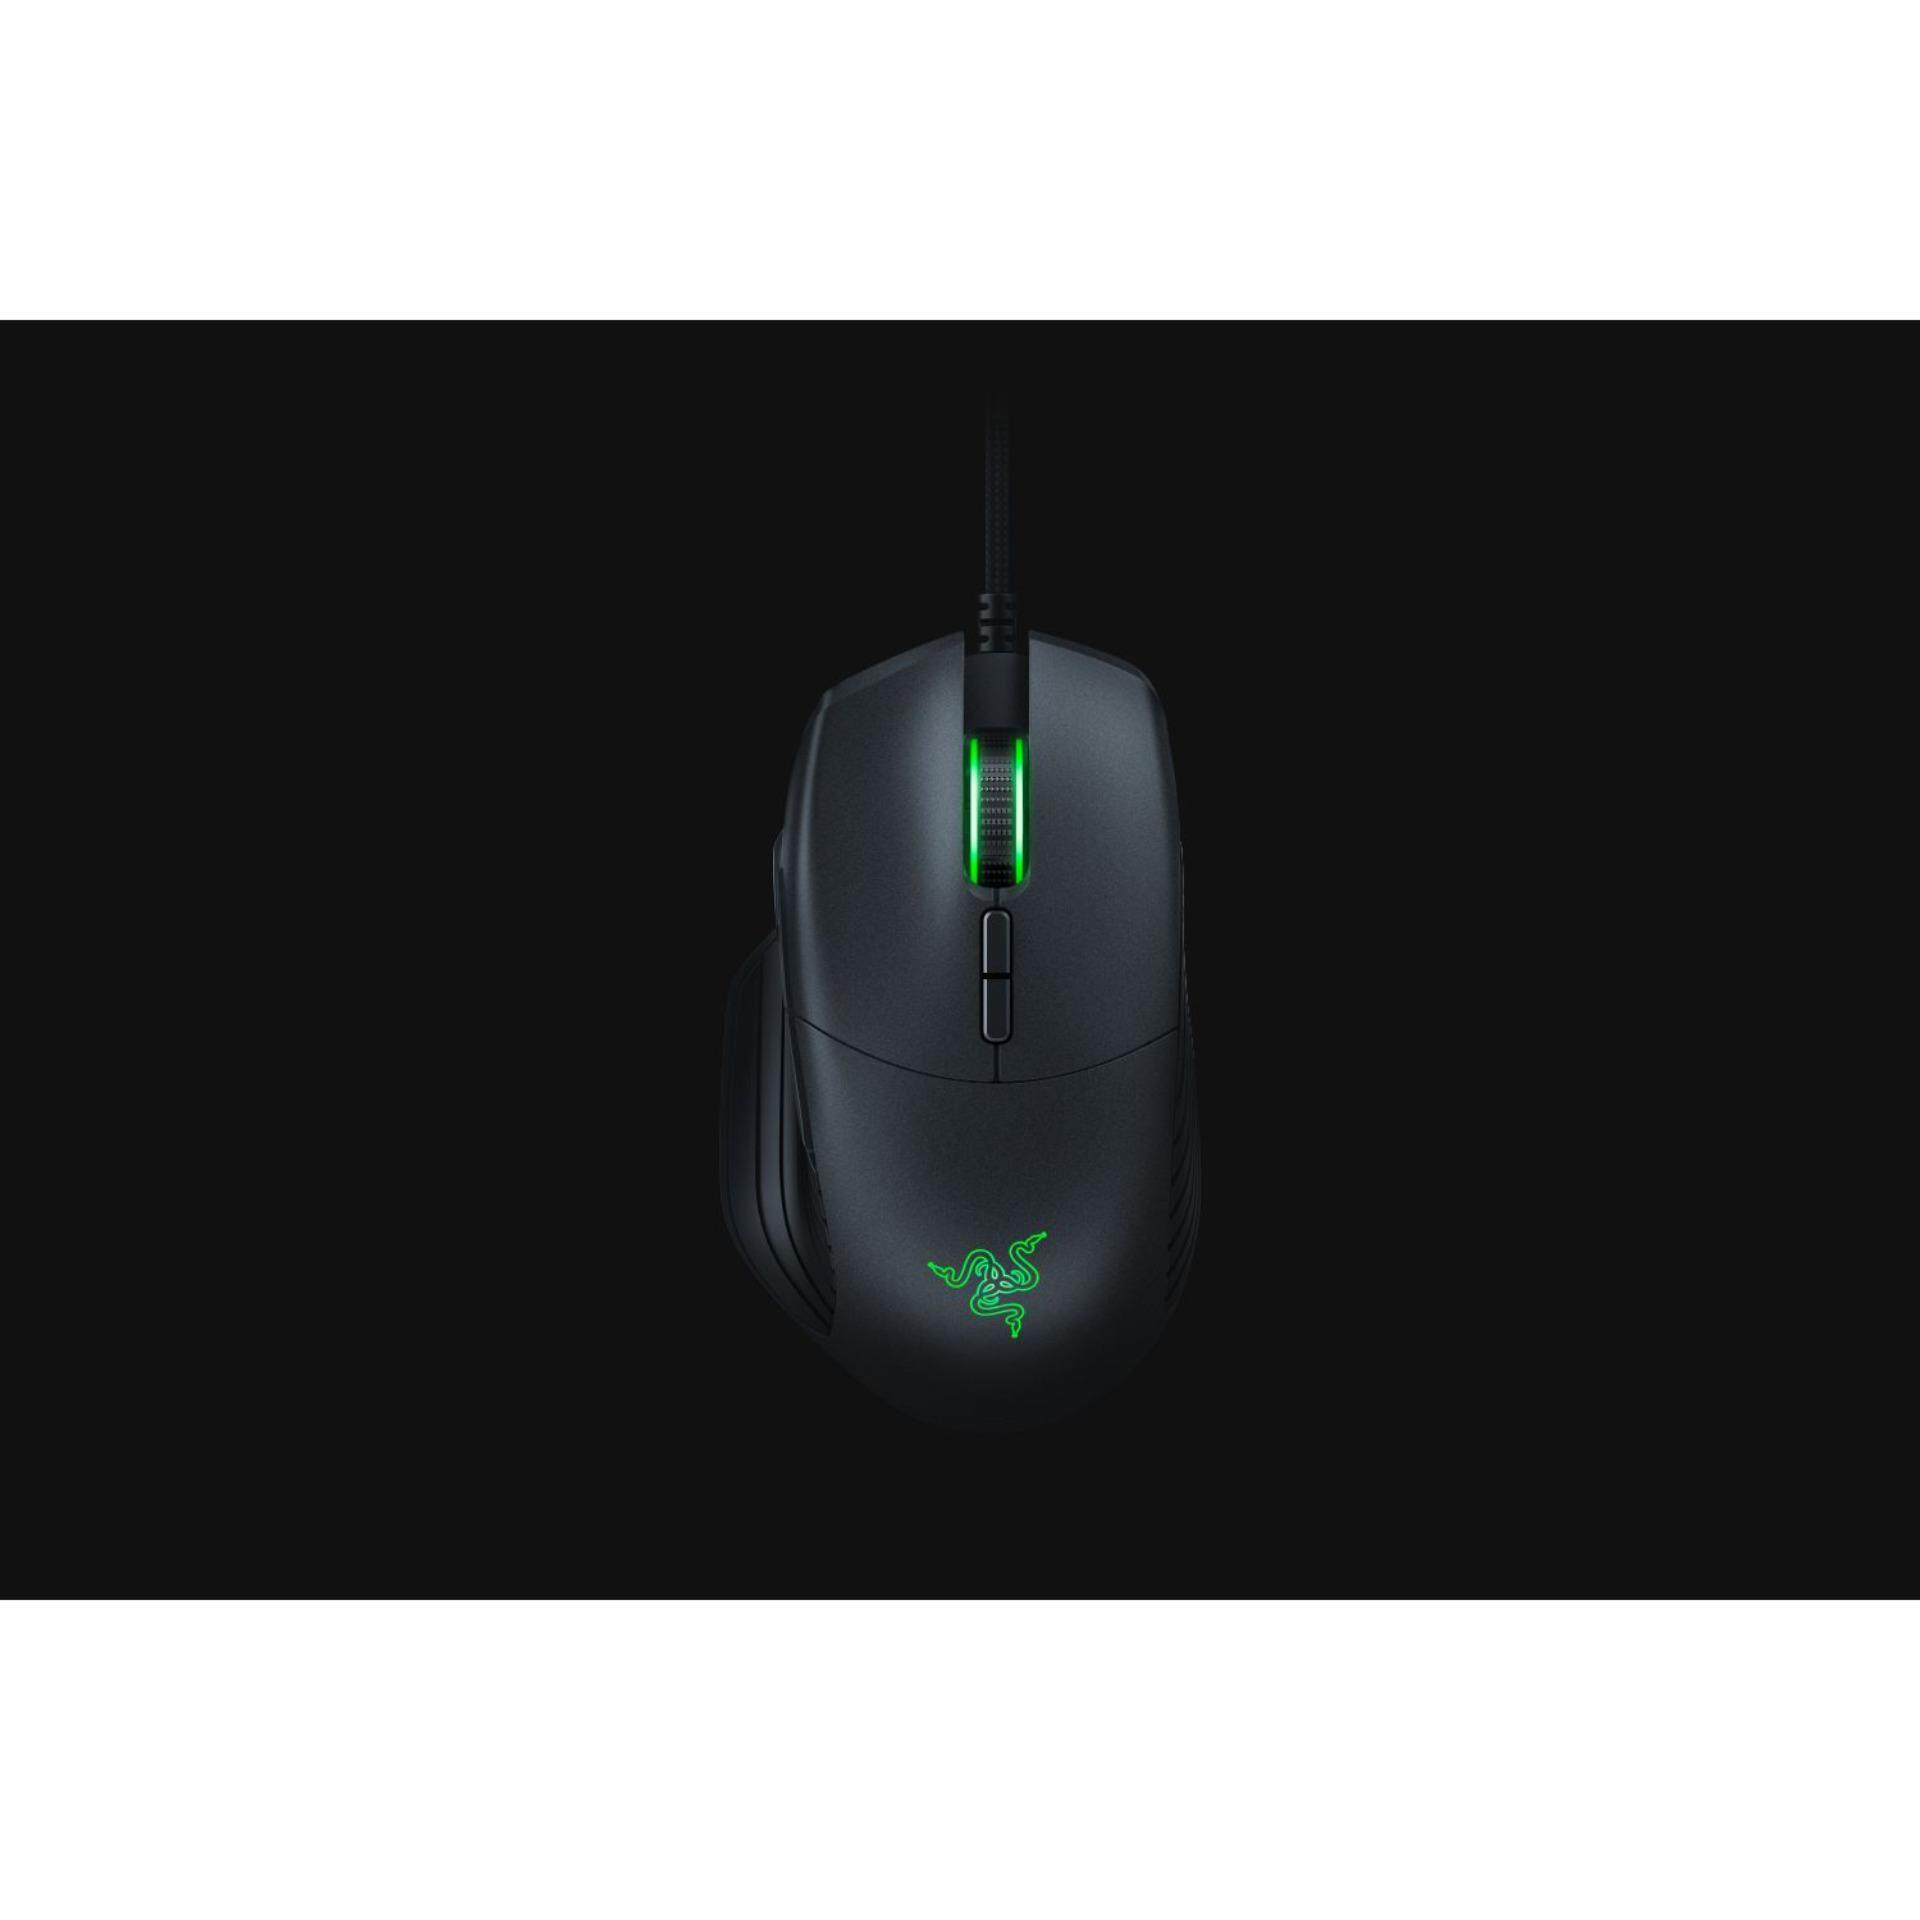 Razer Basilisk Gaming Mouse ( Multi-Colour Light - 7 button 16,00dpi 5G Optical Sensor Mice )